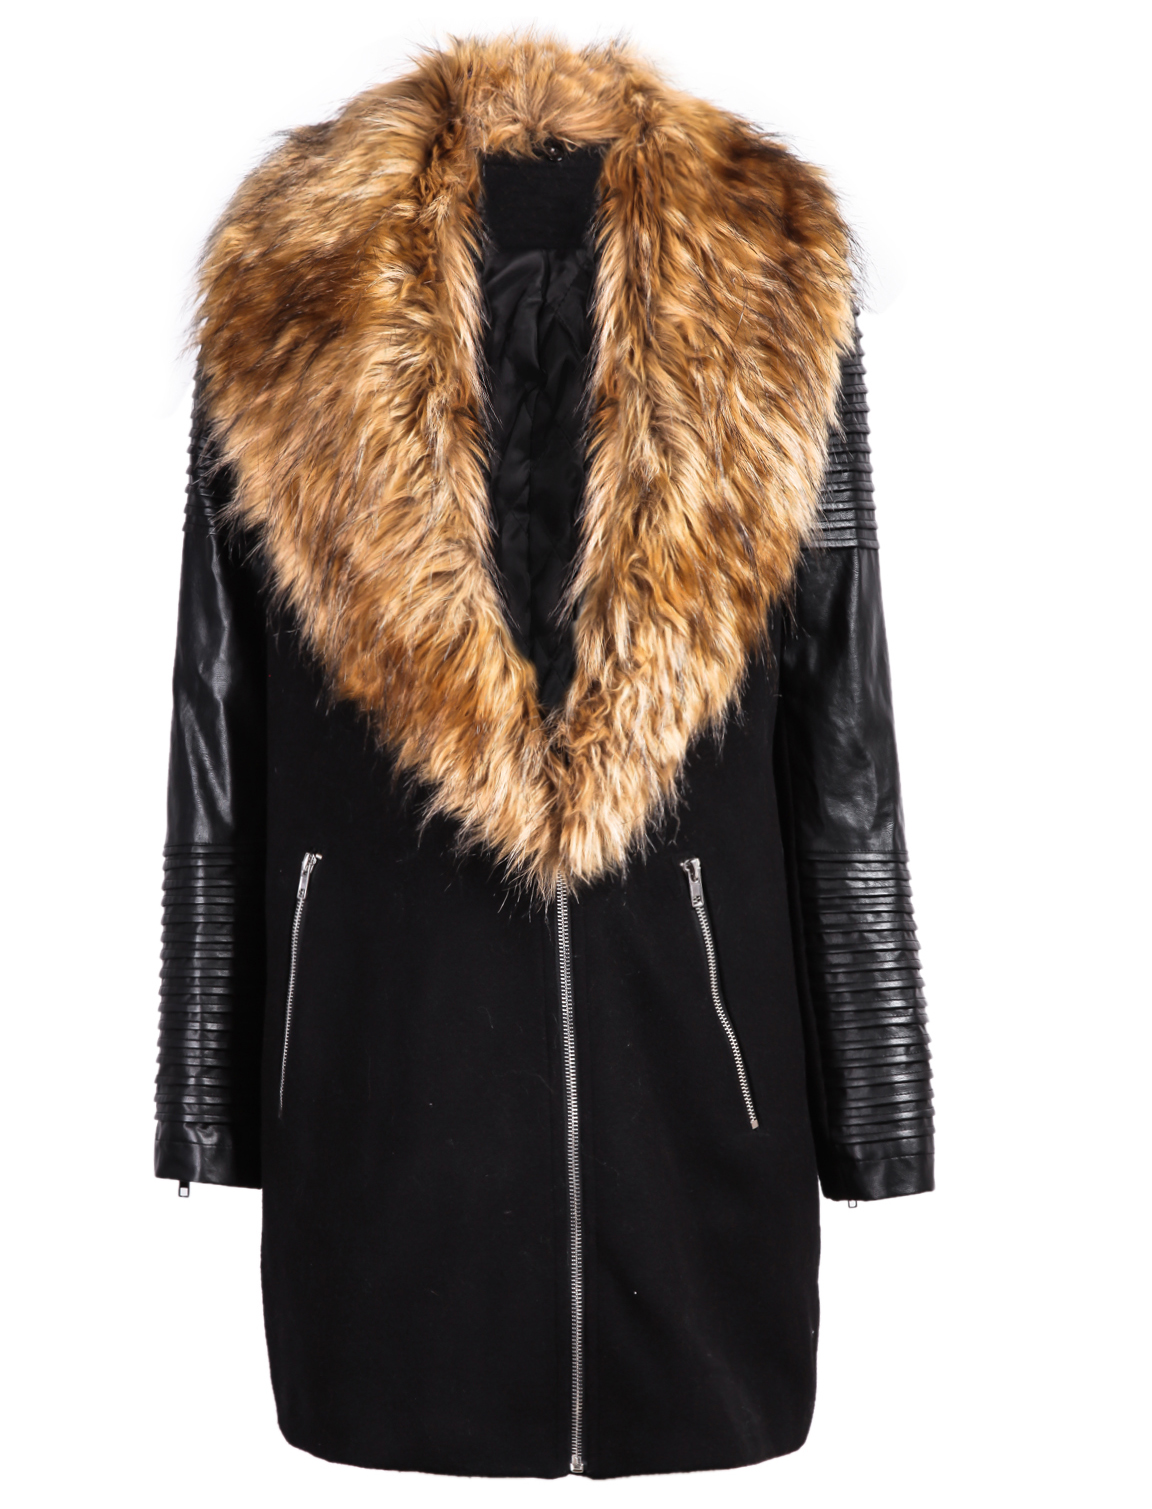 Free shipping and returns on leather & faux-leather coats & jackets for women at xajk8note.ml Shop the latest styles from brands like BLANKNYC, Bernardo, Halogen & more.